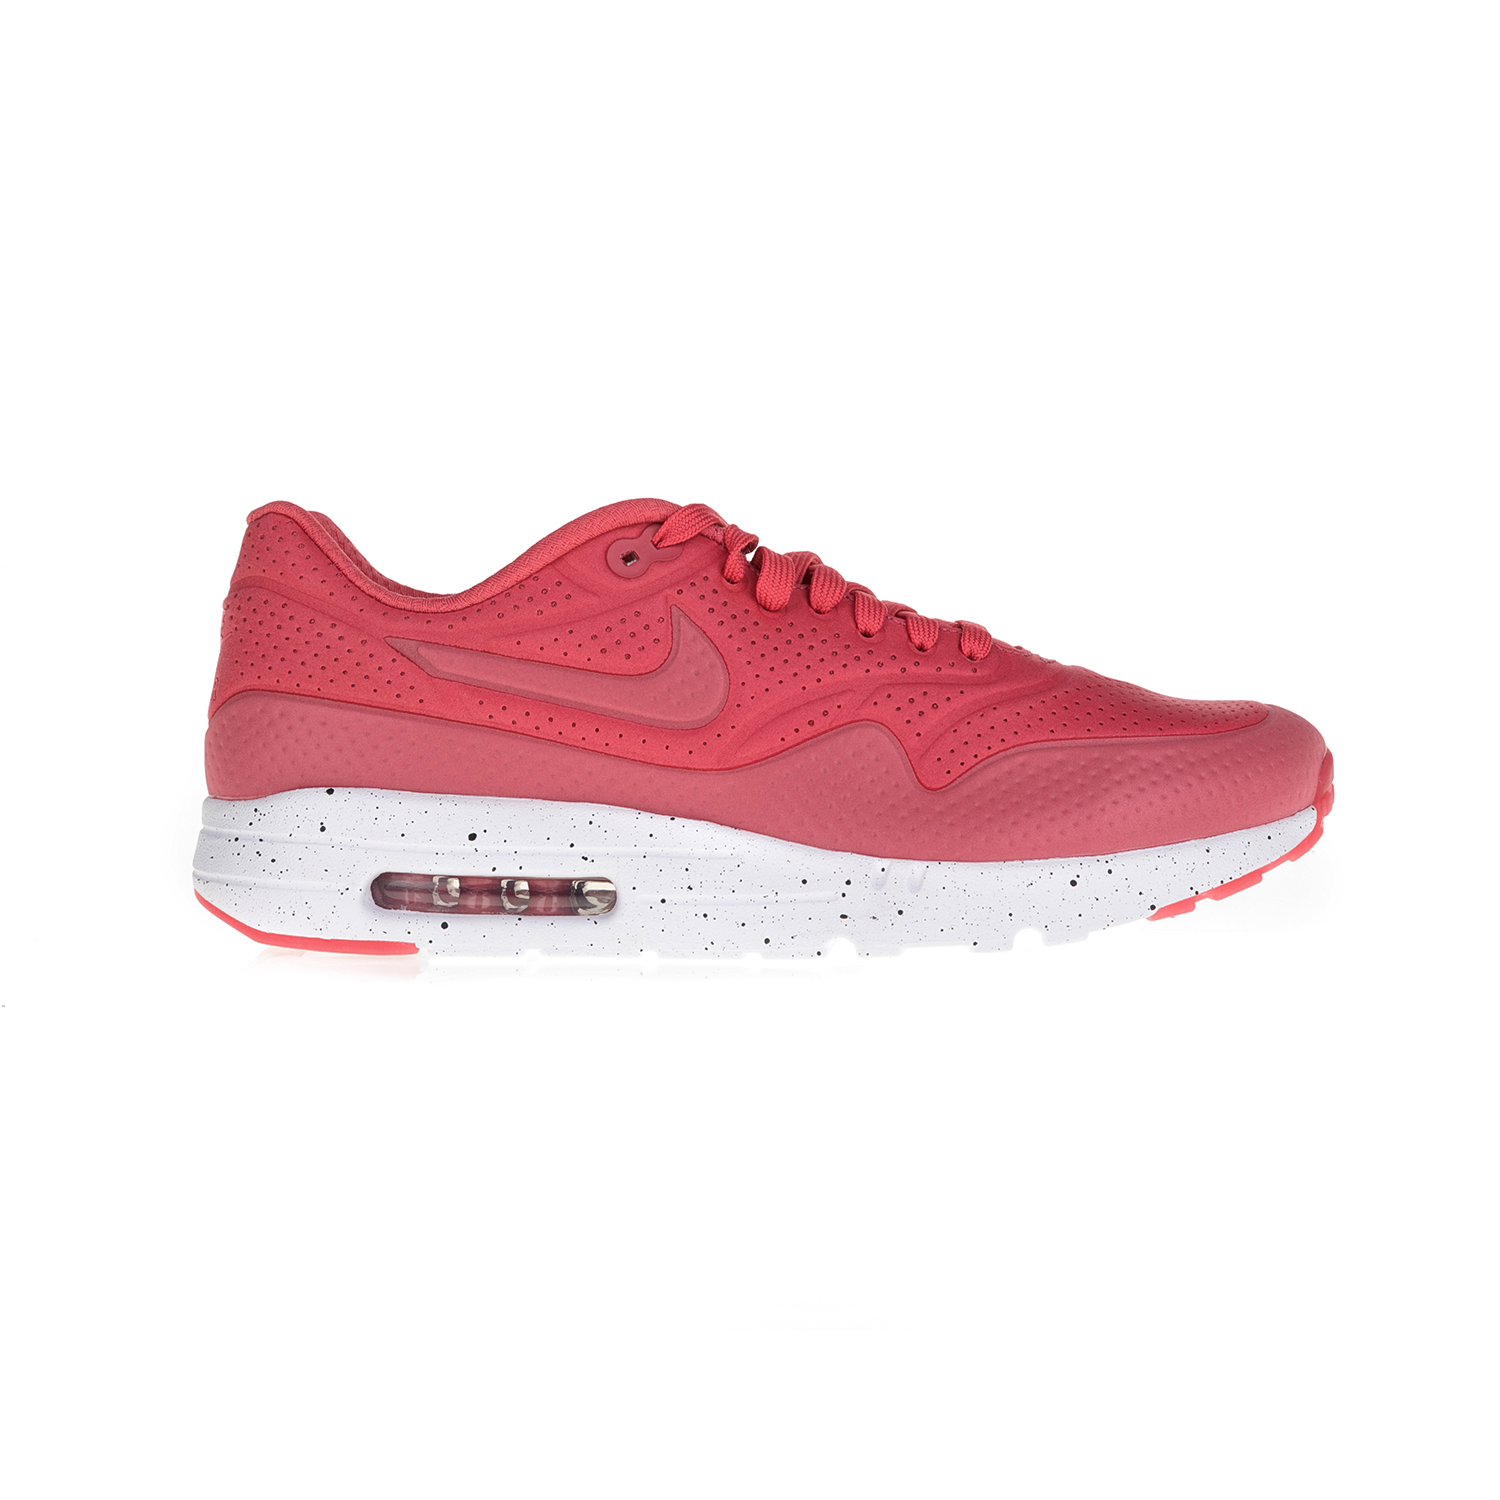 7f3d88c1716 NIKE - Ανδρικά παπούτσια NIKE AIR MAX 1 ULTRA MOIRE κόκκινα